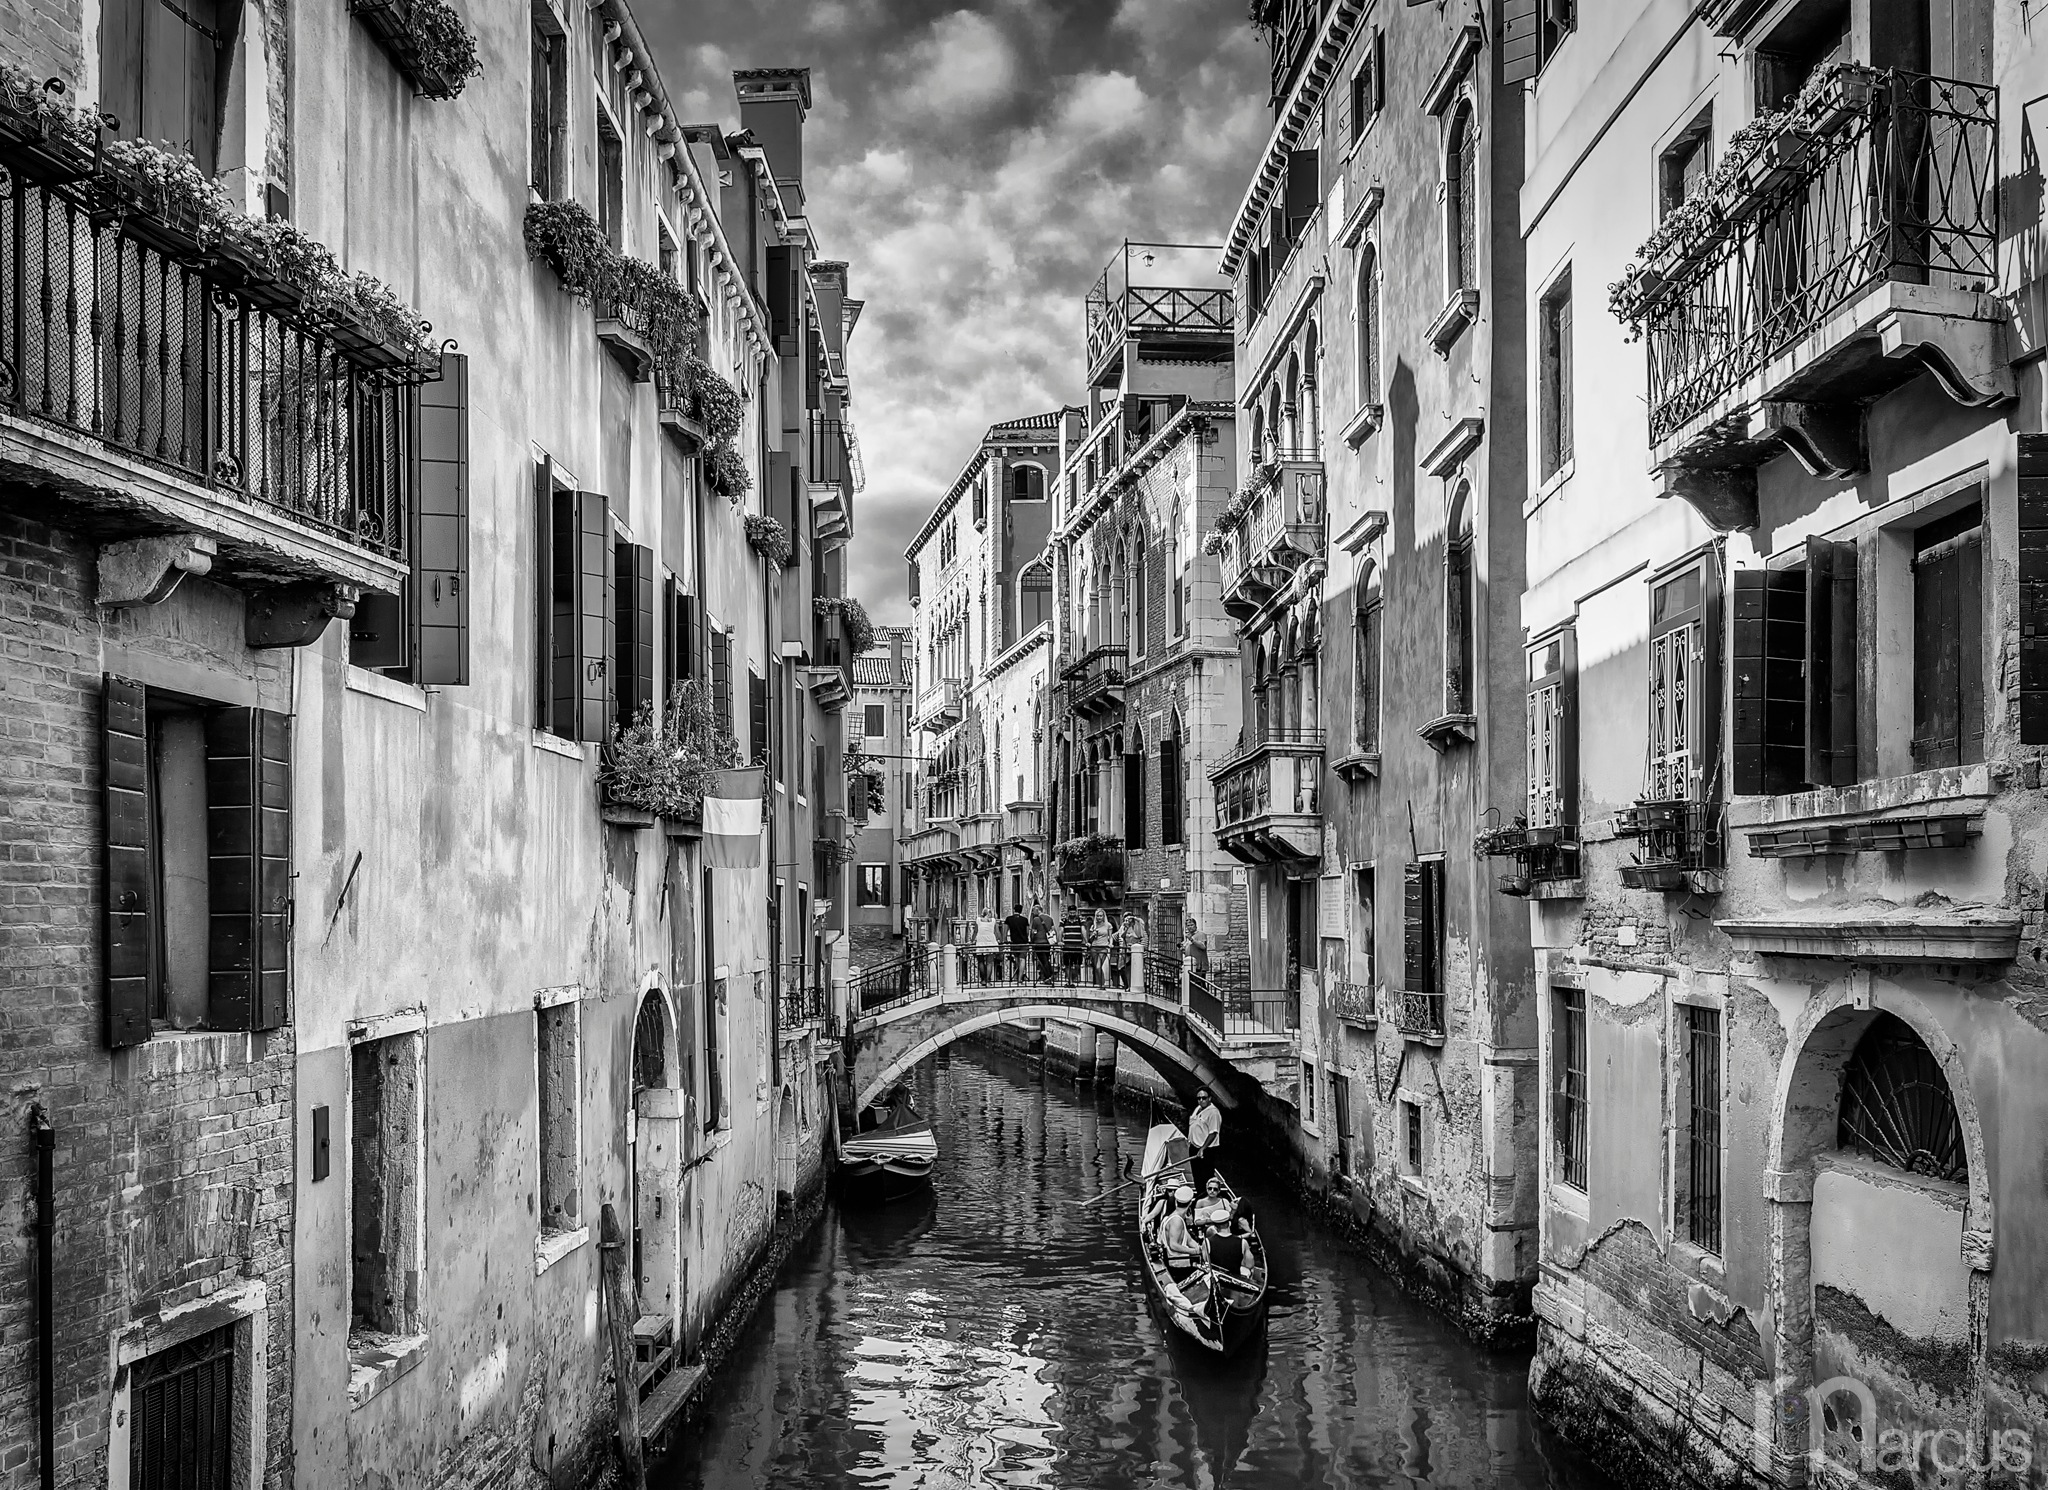 Canal Life by Richard Marcus